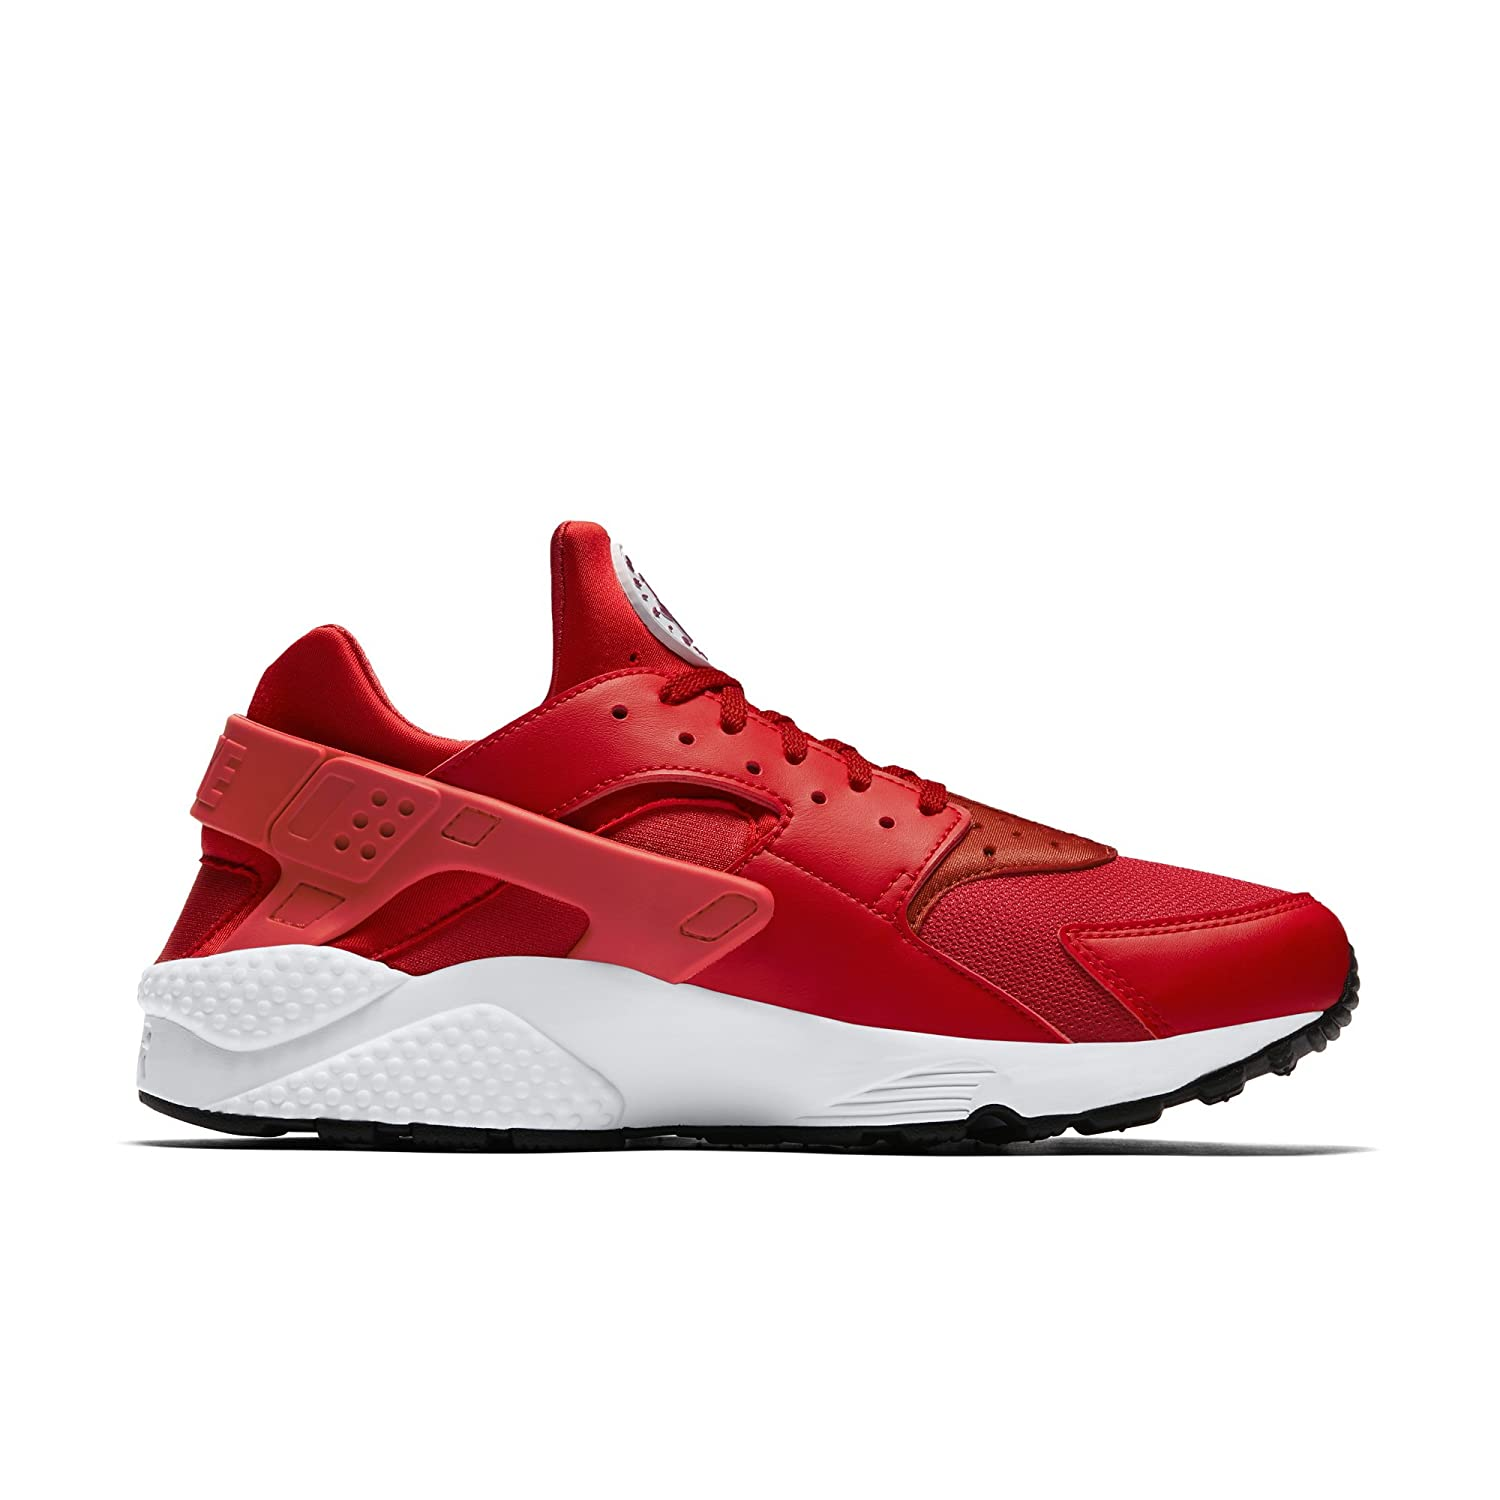 Air HuaracheBaskets Basses Nike HuaracheBaskets Air HuaracheBaskets Air Homme Nike Nike Basses Homme tohdCxrBsQ